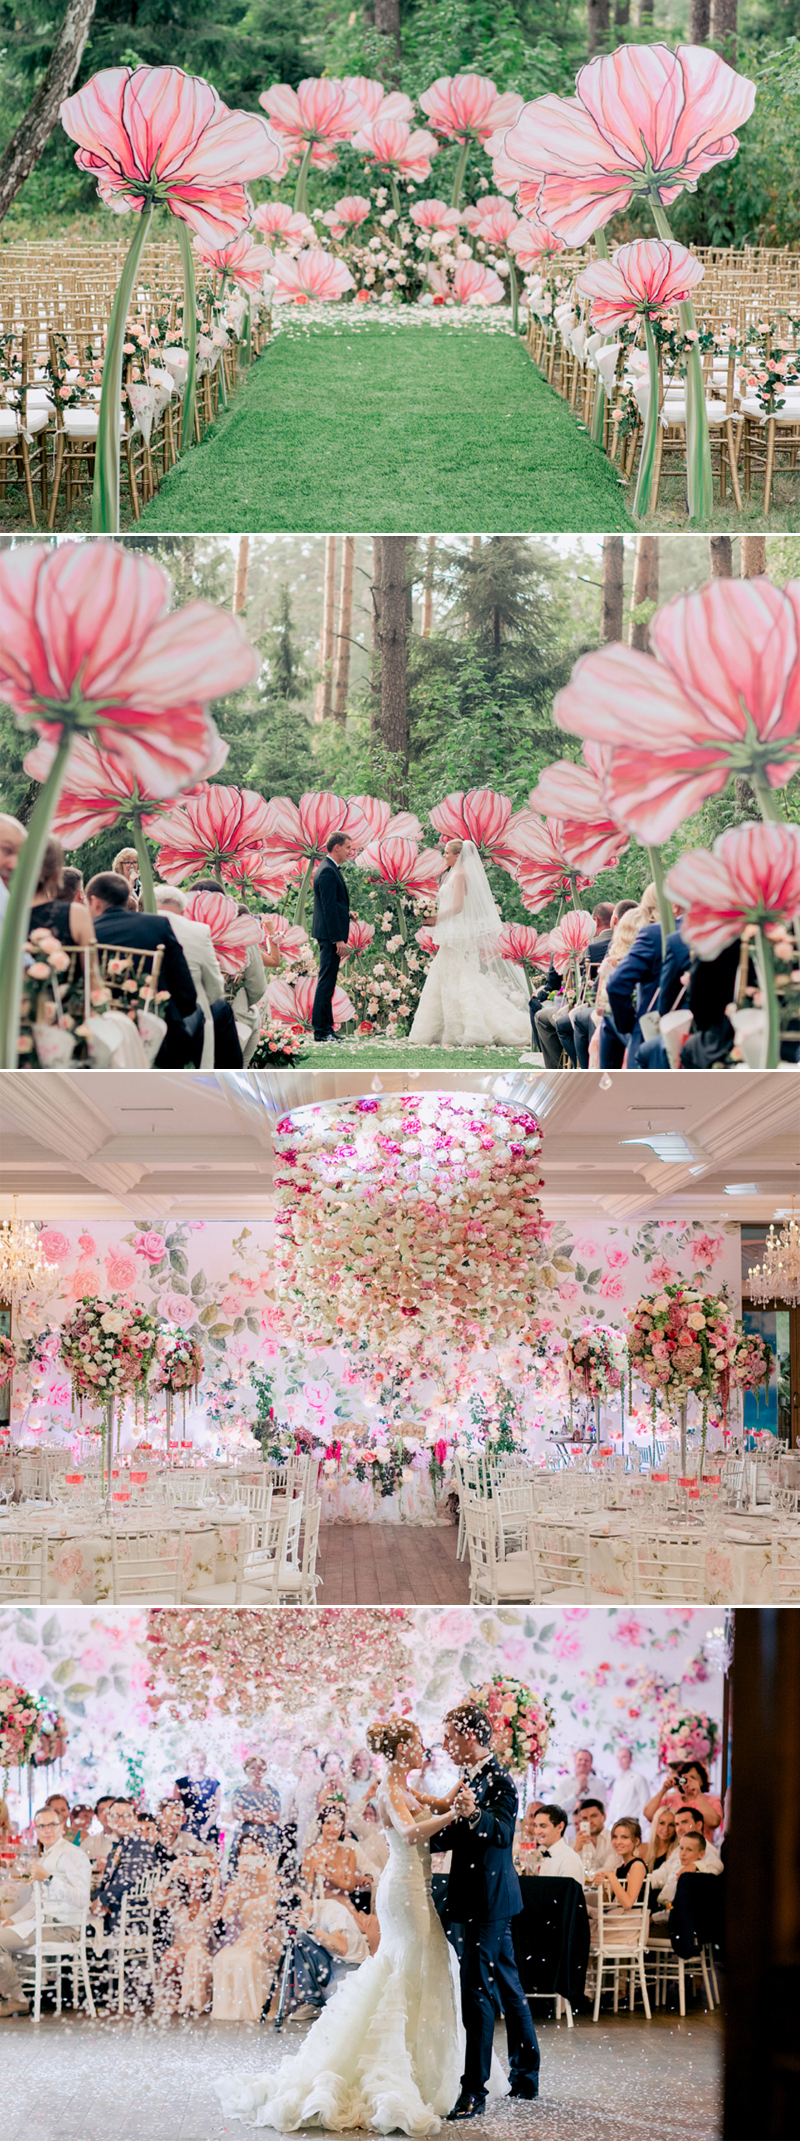 Floral Decor: 7 Incredibly Magical Themes For Spring Fairytale Weddings